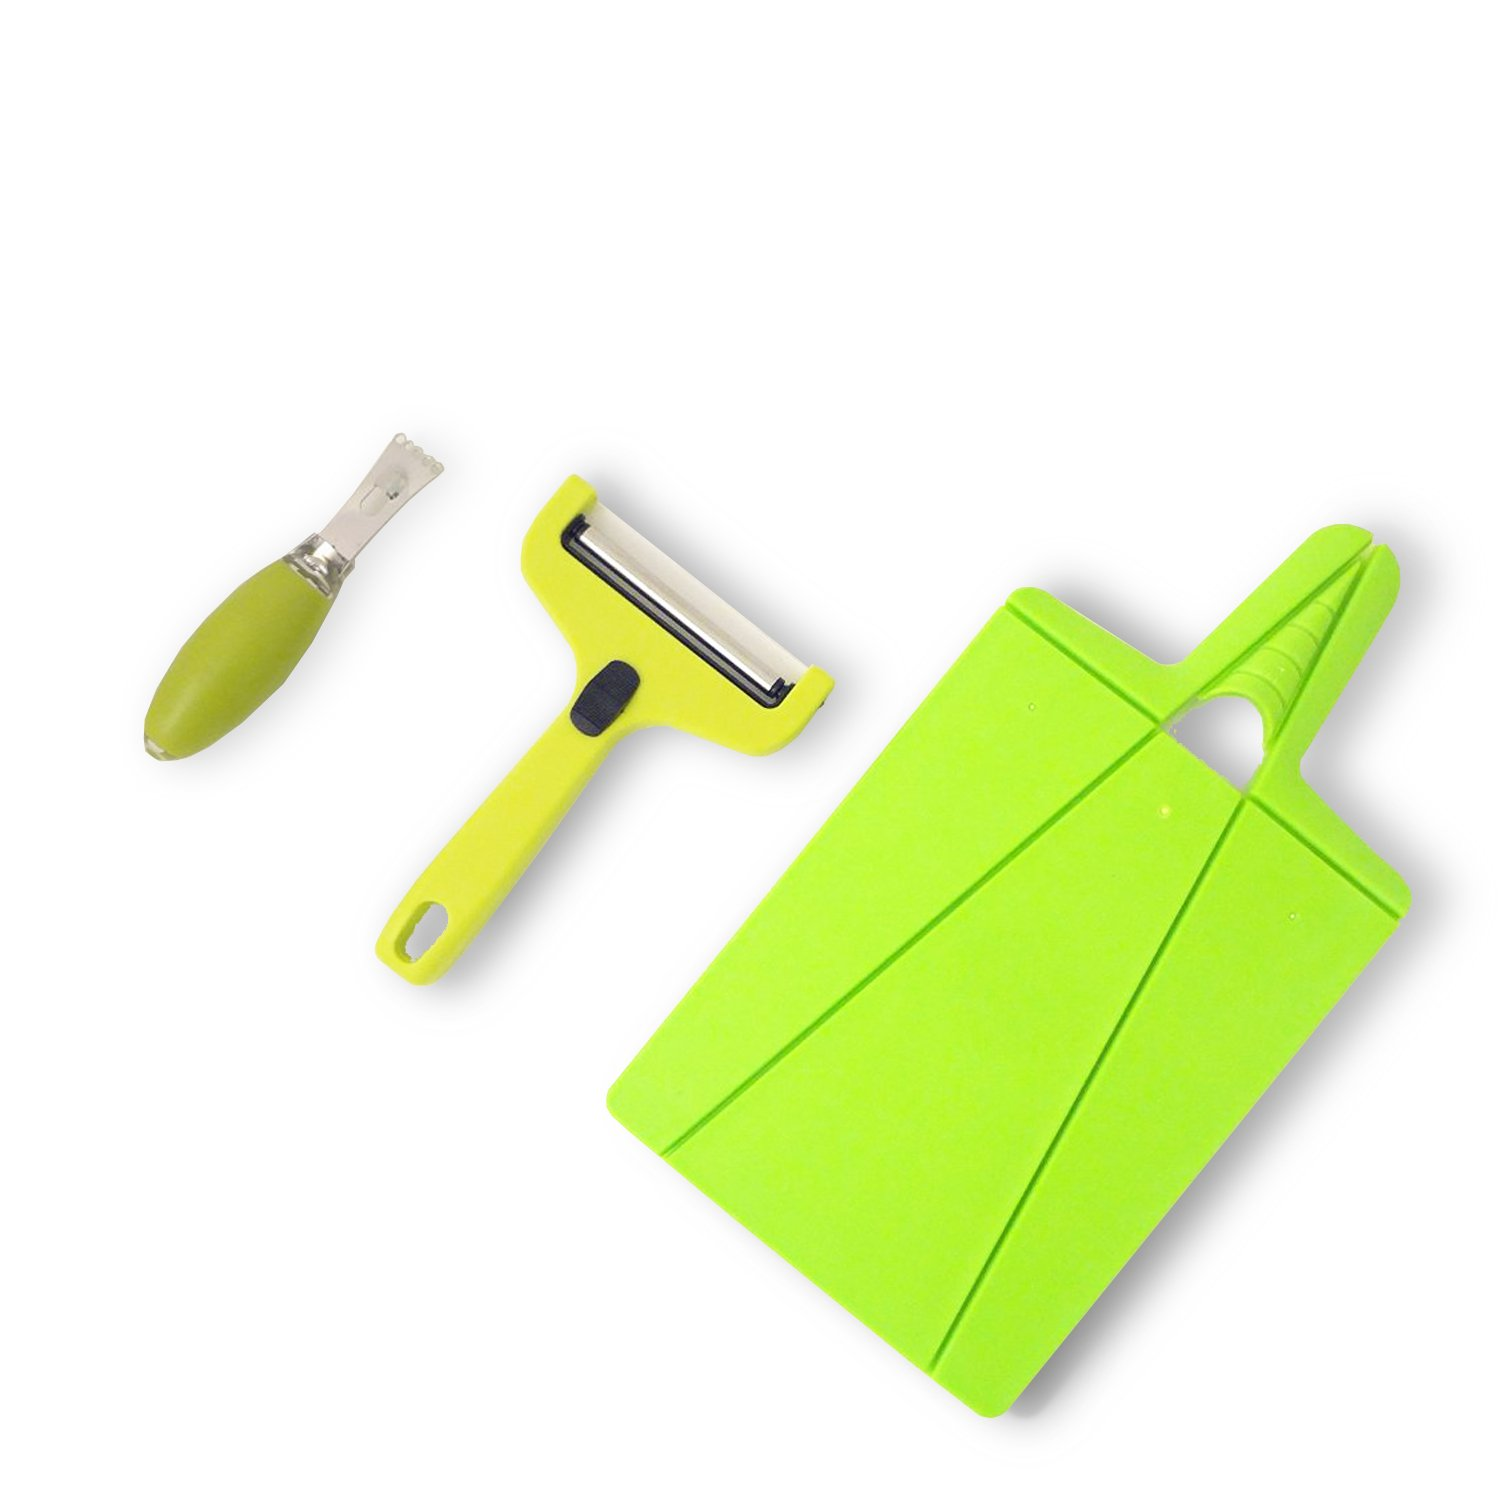 Top Vegetable Spiraler Cutter Slicer Small Green Folding Cutting Board Cheese Zester Kitchen Essential Birthday Present Idea Family Mom Dad Grandpa Brother Chef Cook Set Best Stocking Stuffer College by JCCentral (Image #4)